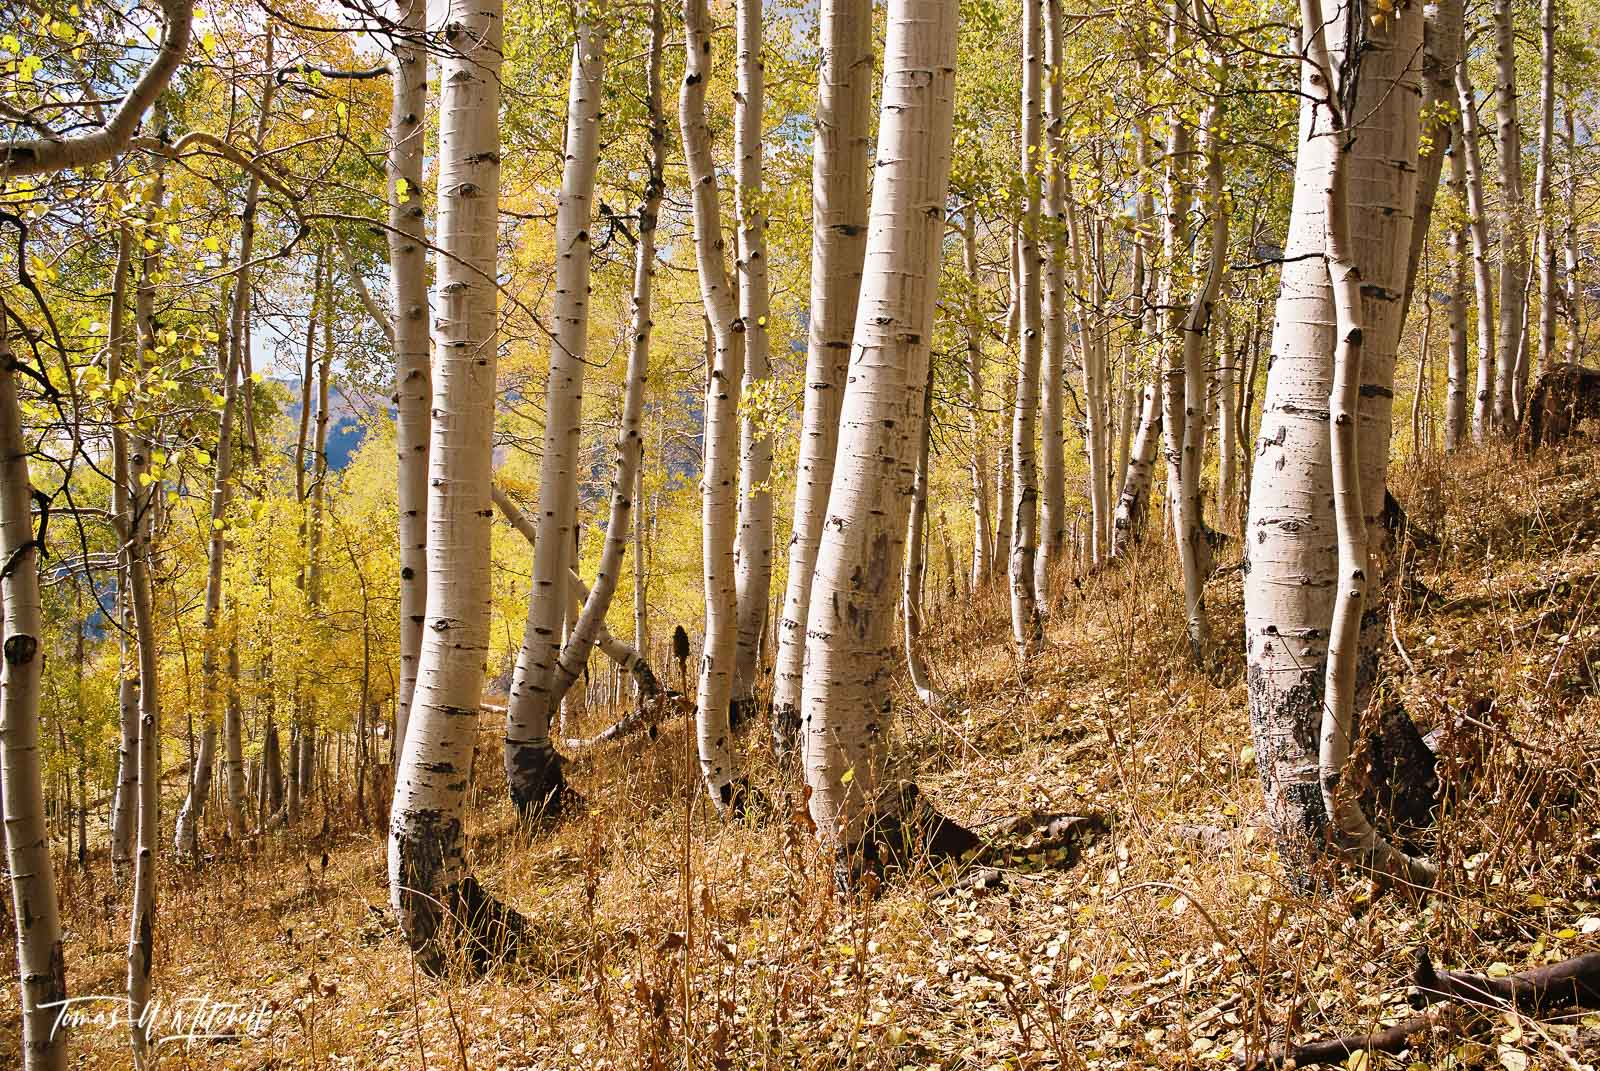 limited edition, fine art, prints, photograph, film, Nikon, forest, trees, mount nebo, trunks, golden leaves, quaking aspens, eyes, photo